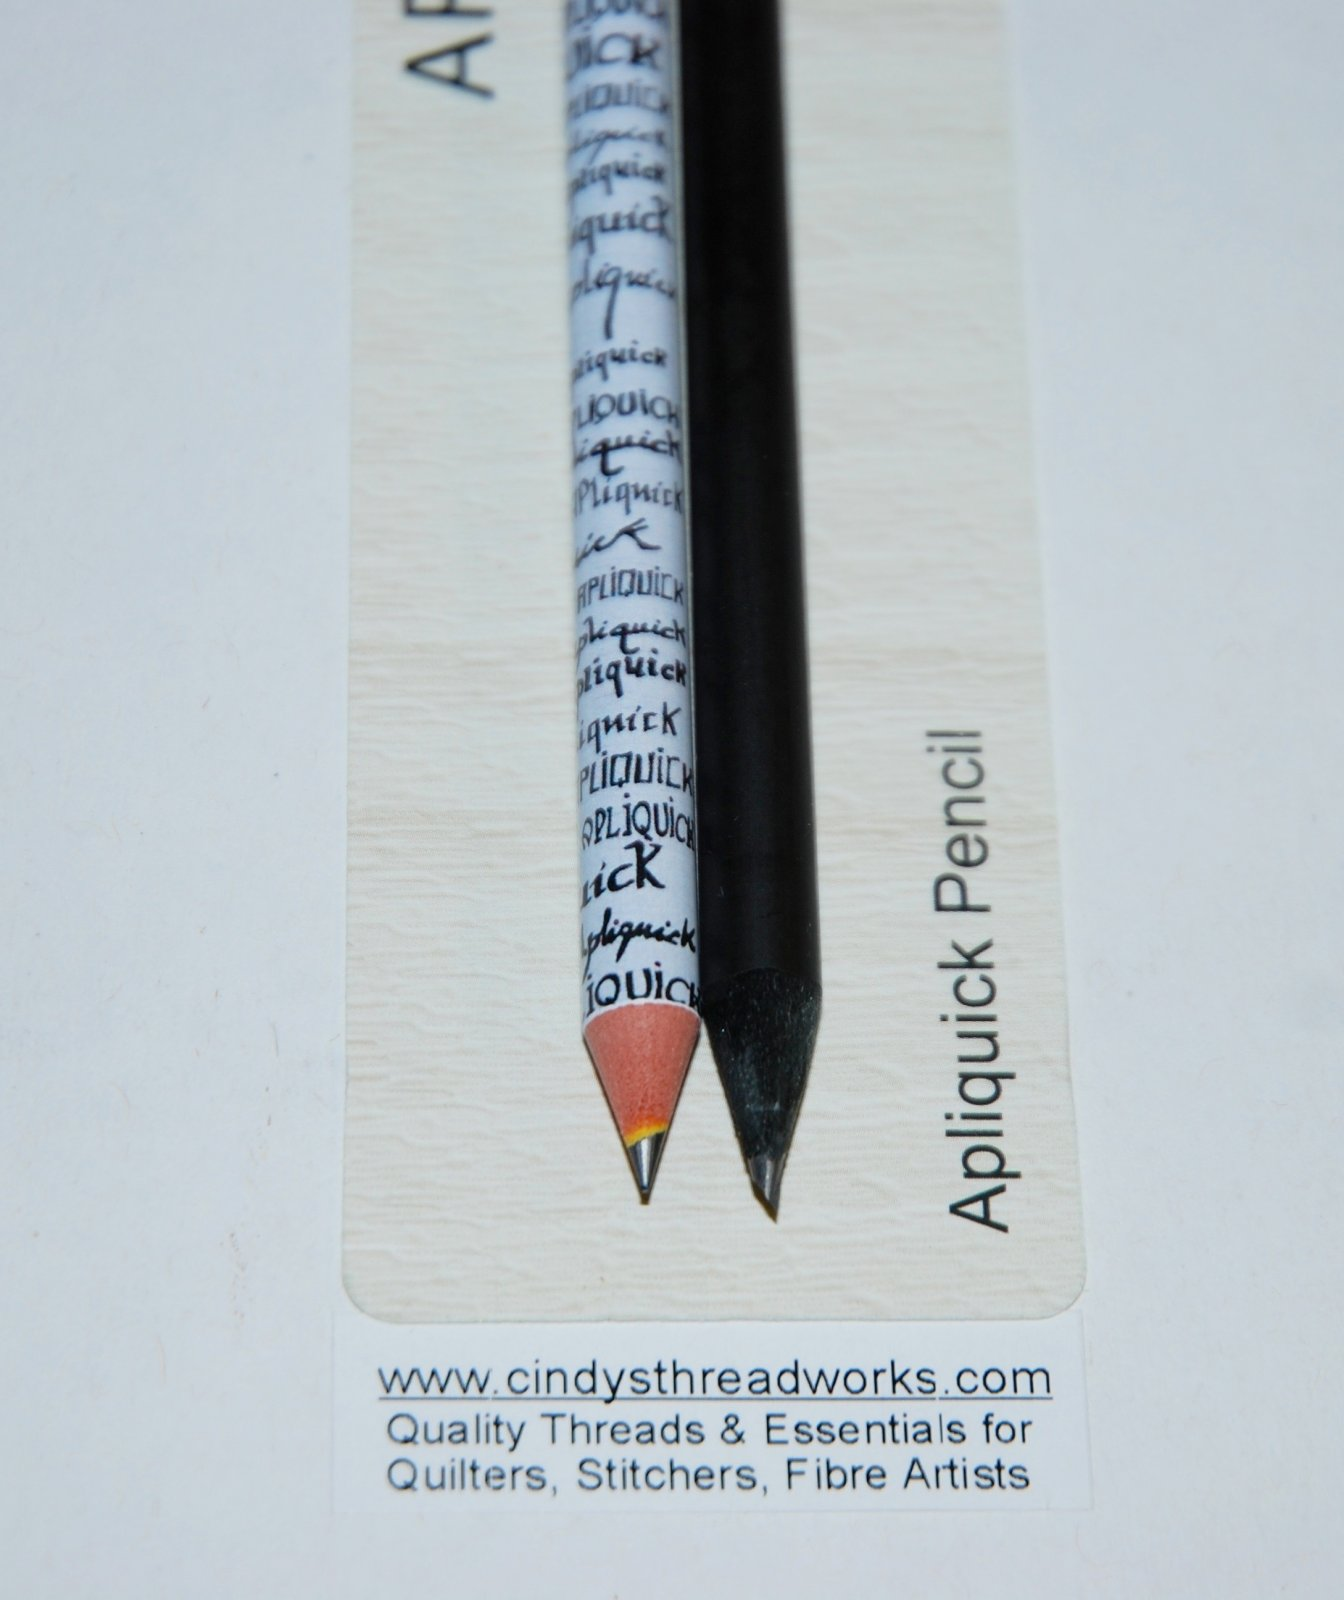 Apliquick Applique 2 Pencil SET